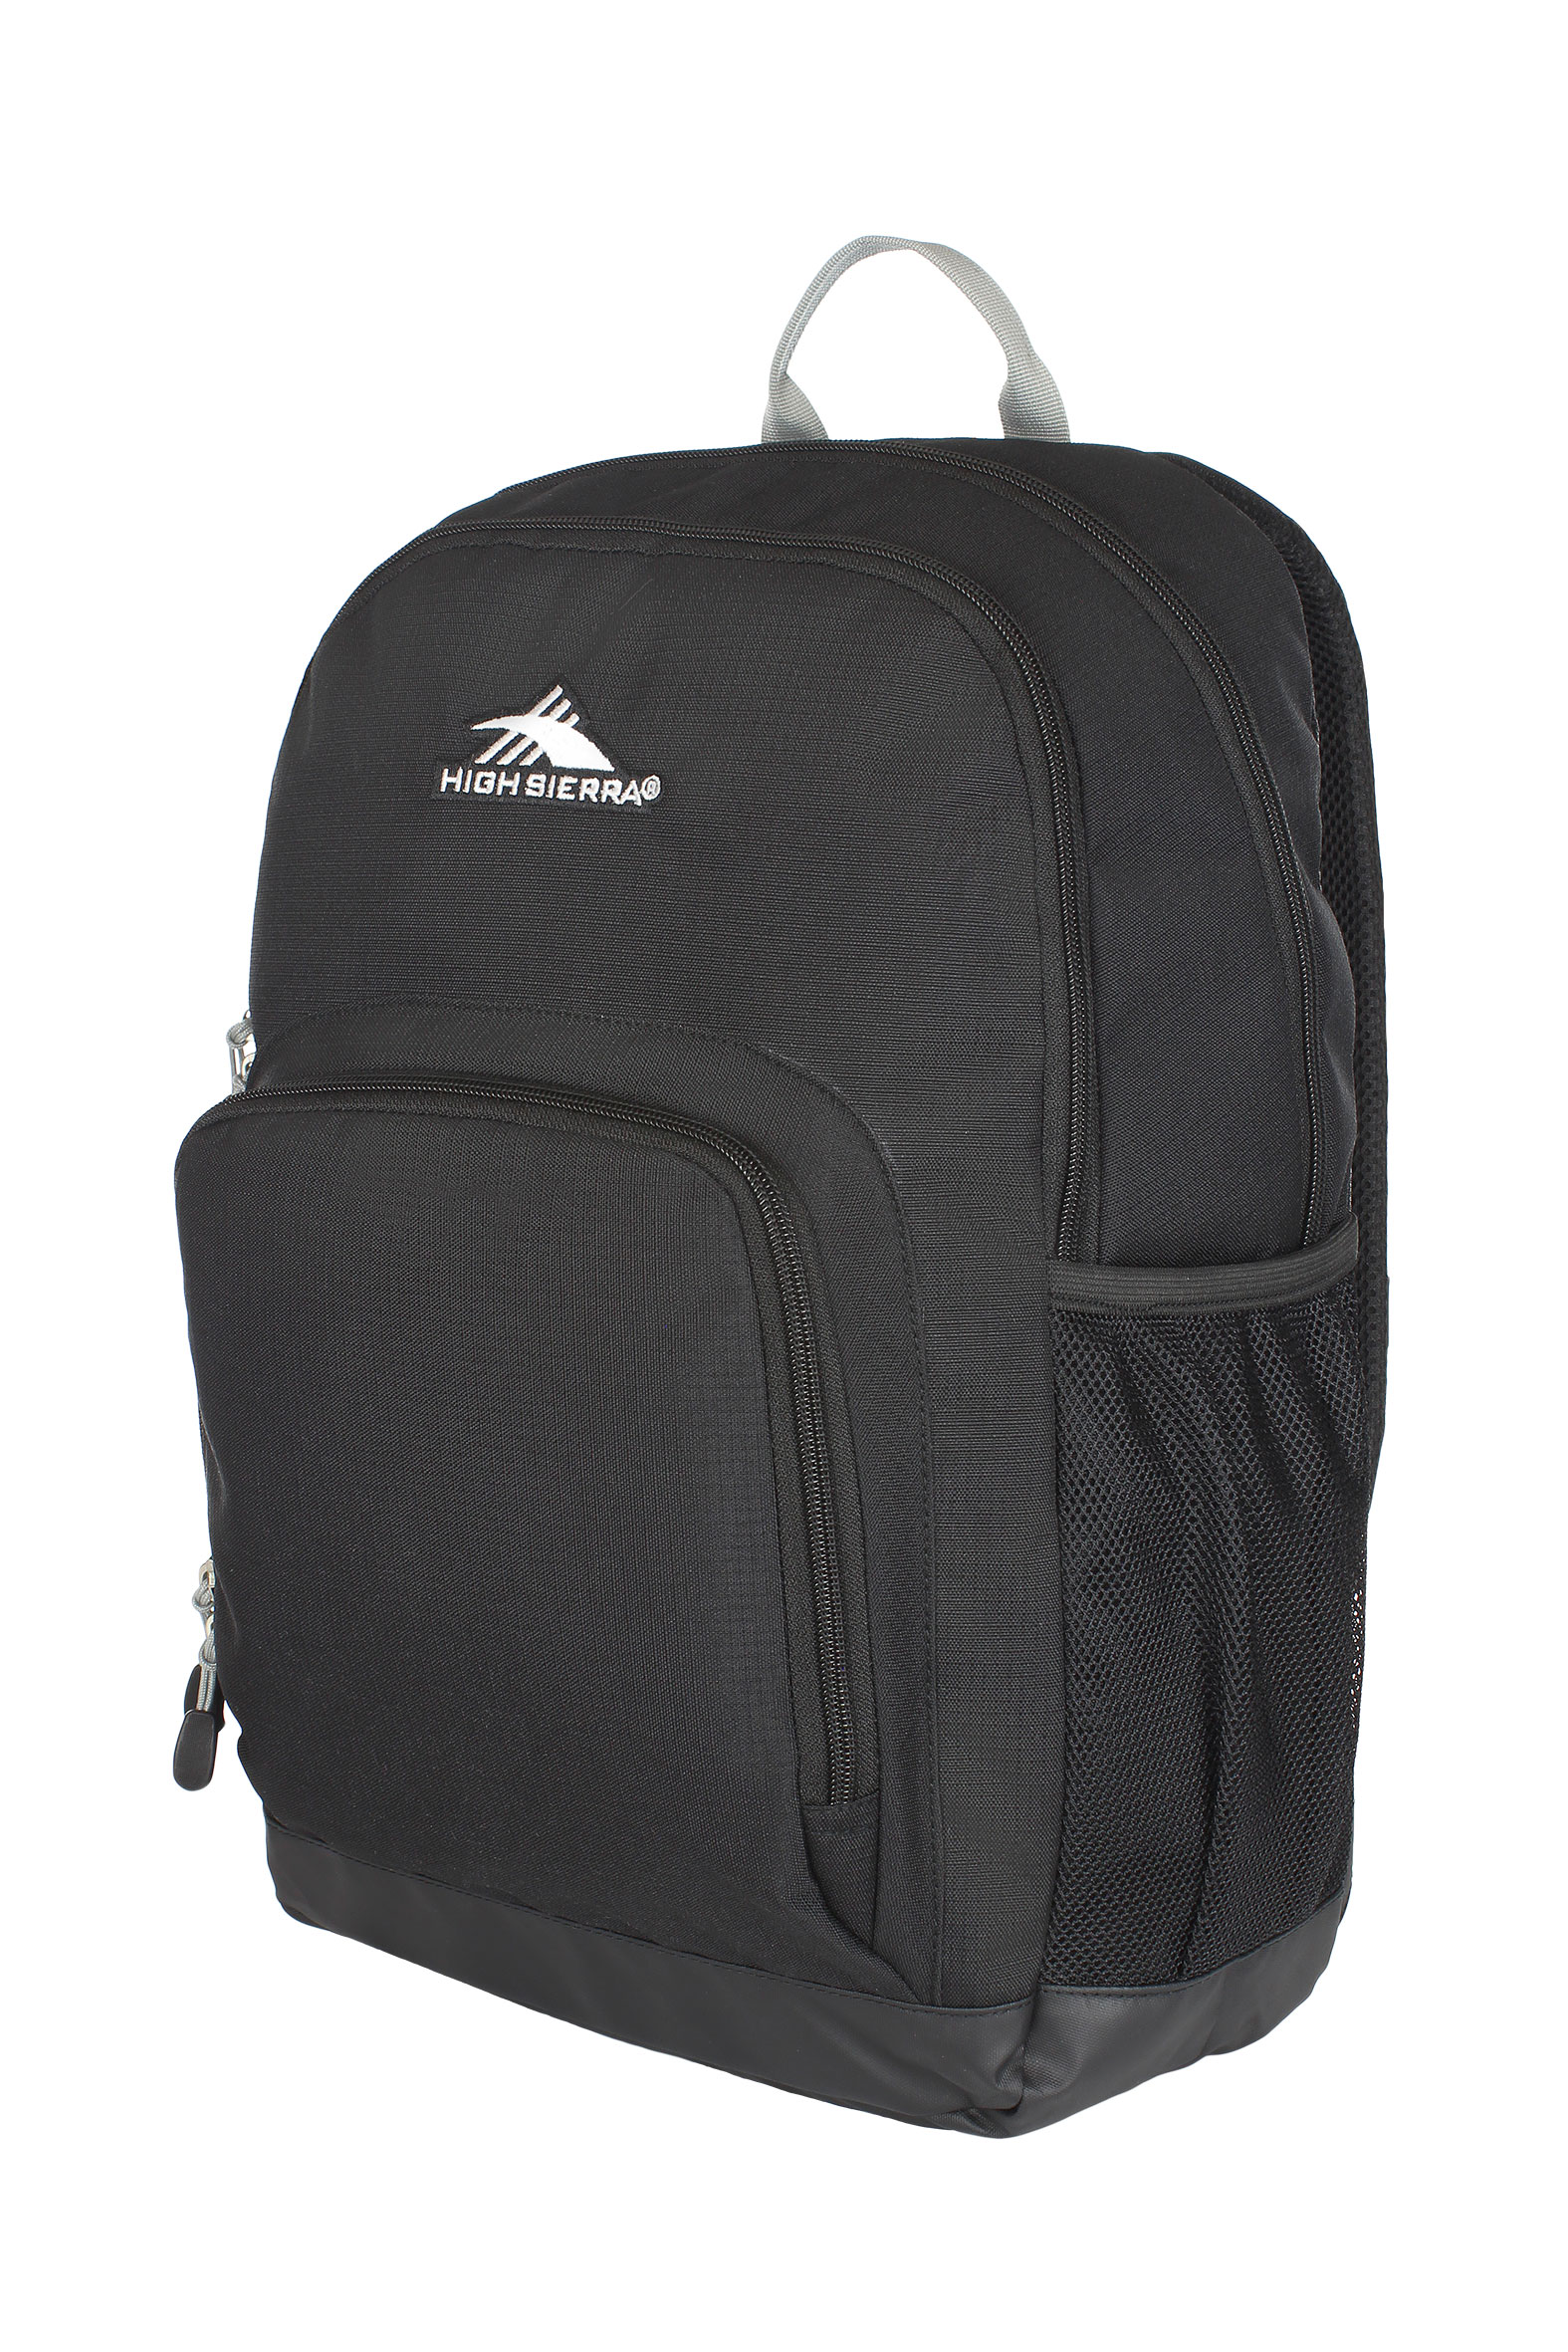 High Sierra Mirus Backpack